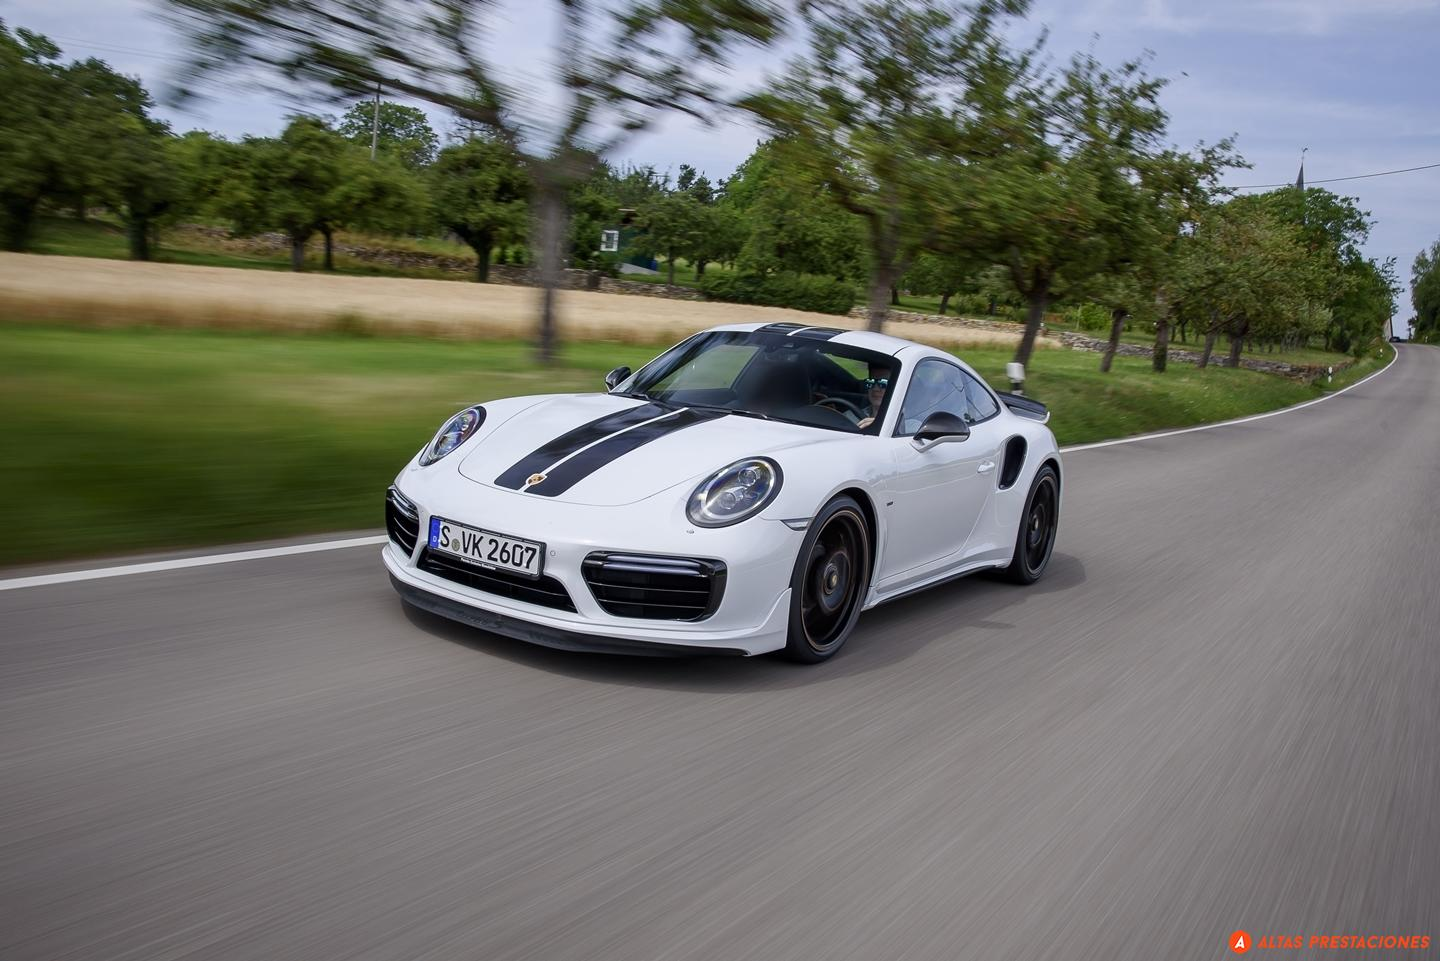 Porsche 911 Turbo S Exclusive Series Test At The Controls Of The King Among The Turbo Supercar Search Engine